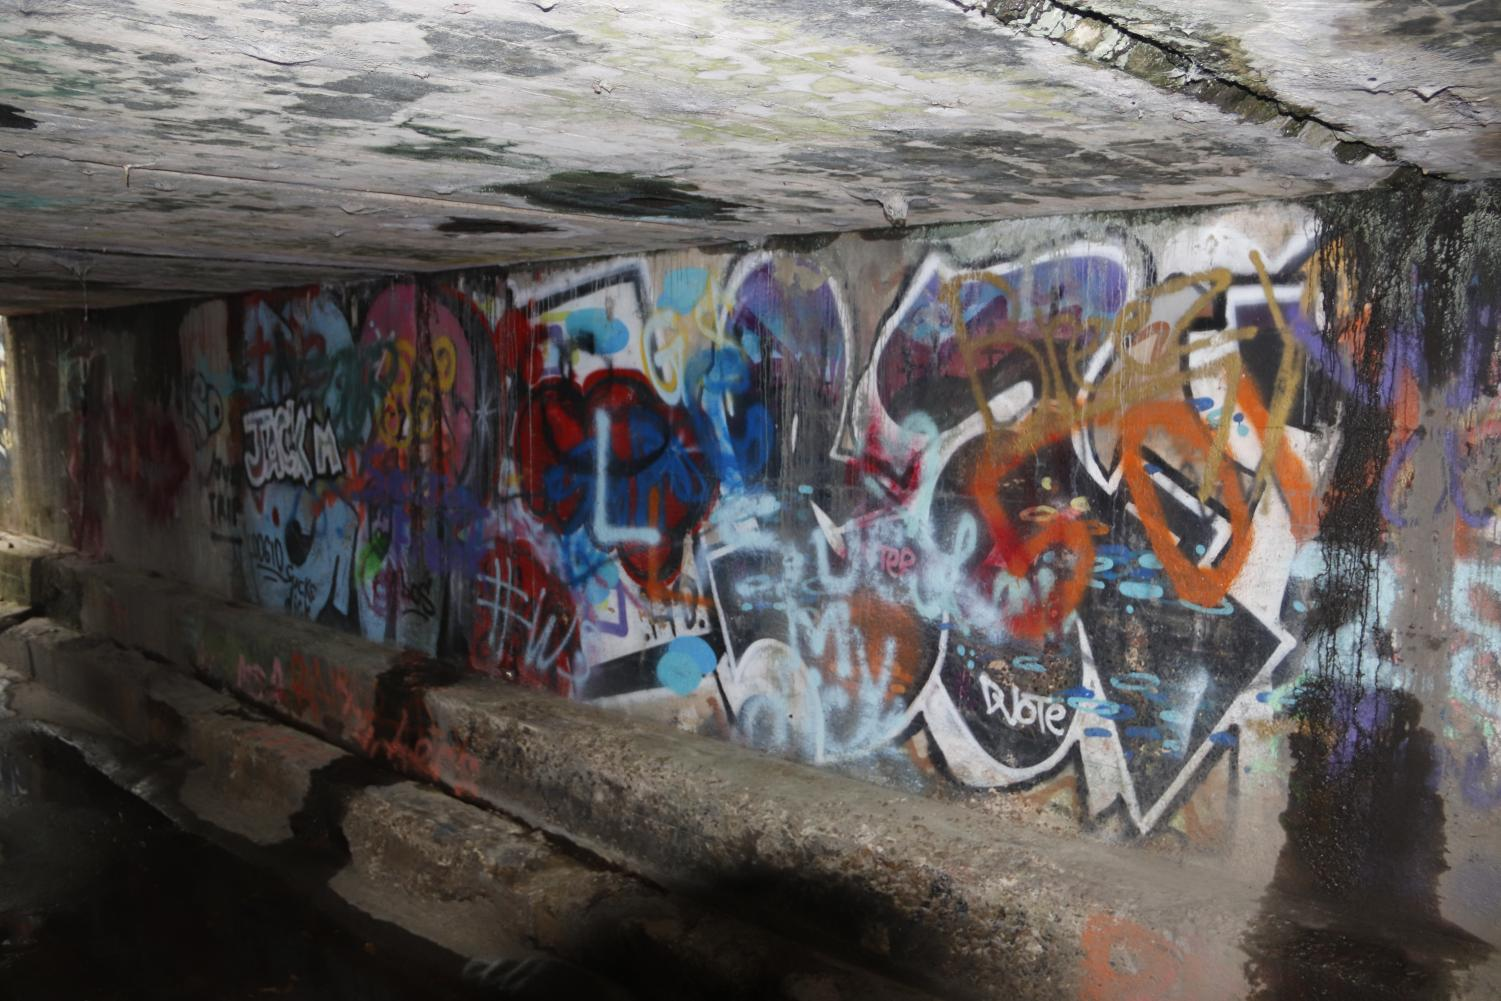 Graffiti art can be found under train tracks in hammond although it can be an